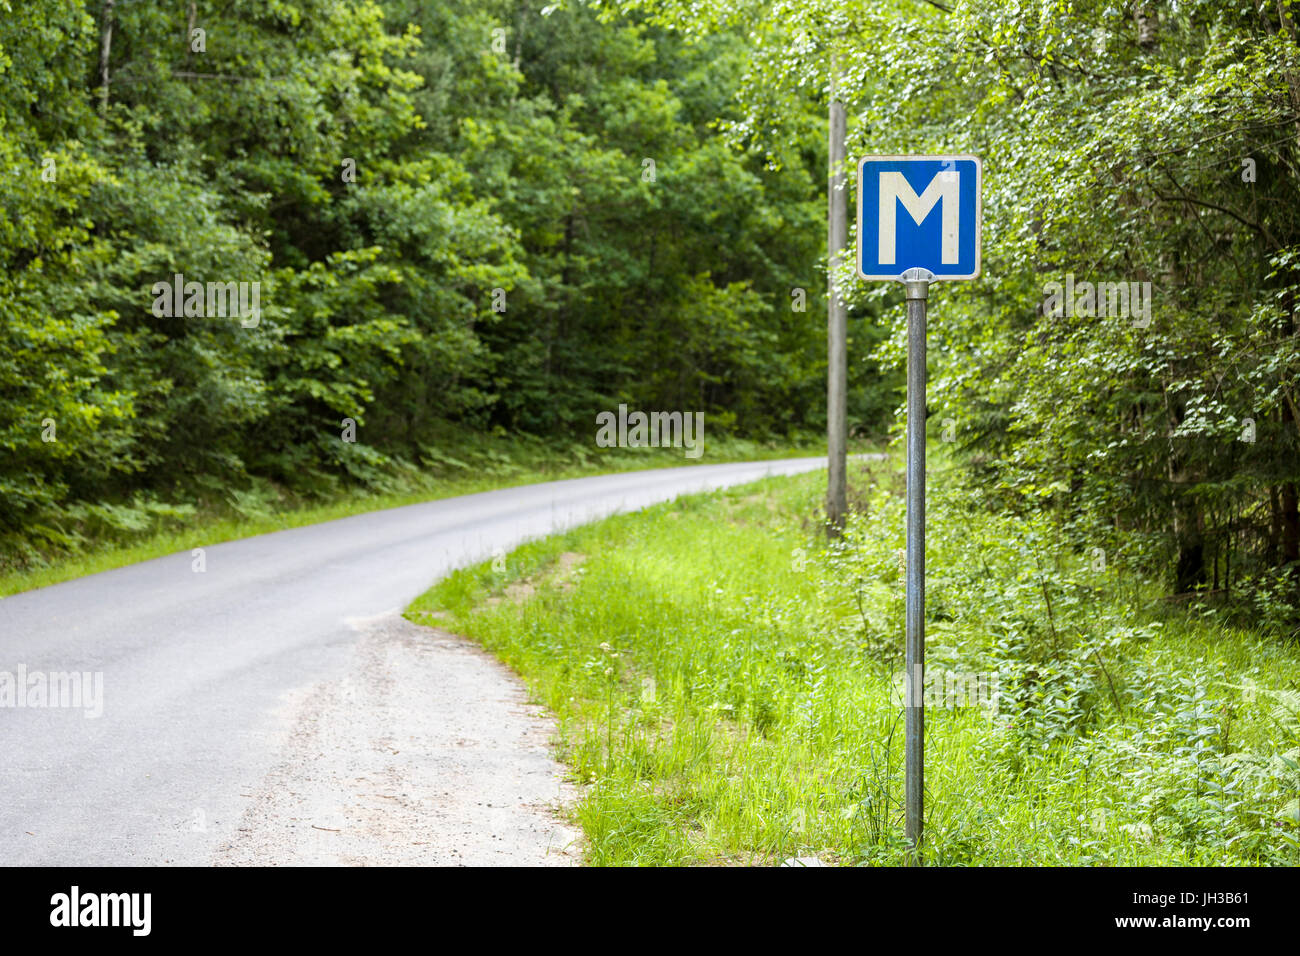 Blue and white letter M sign symbols passing place on swedish single track road in Sweden  Model Release: No.  Property - Stock Image